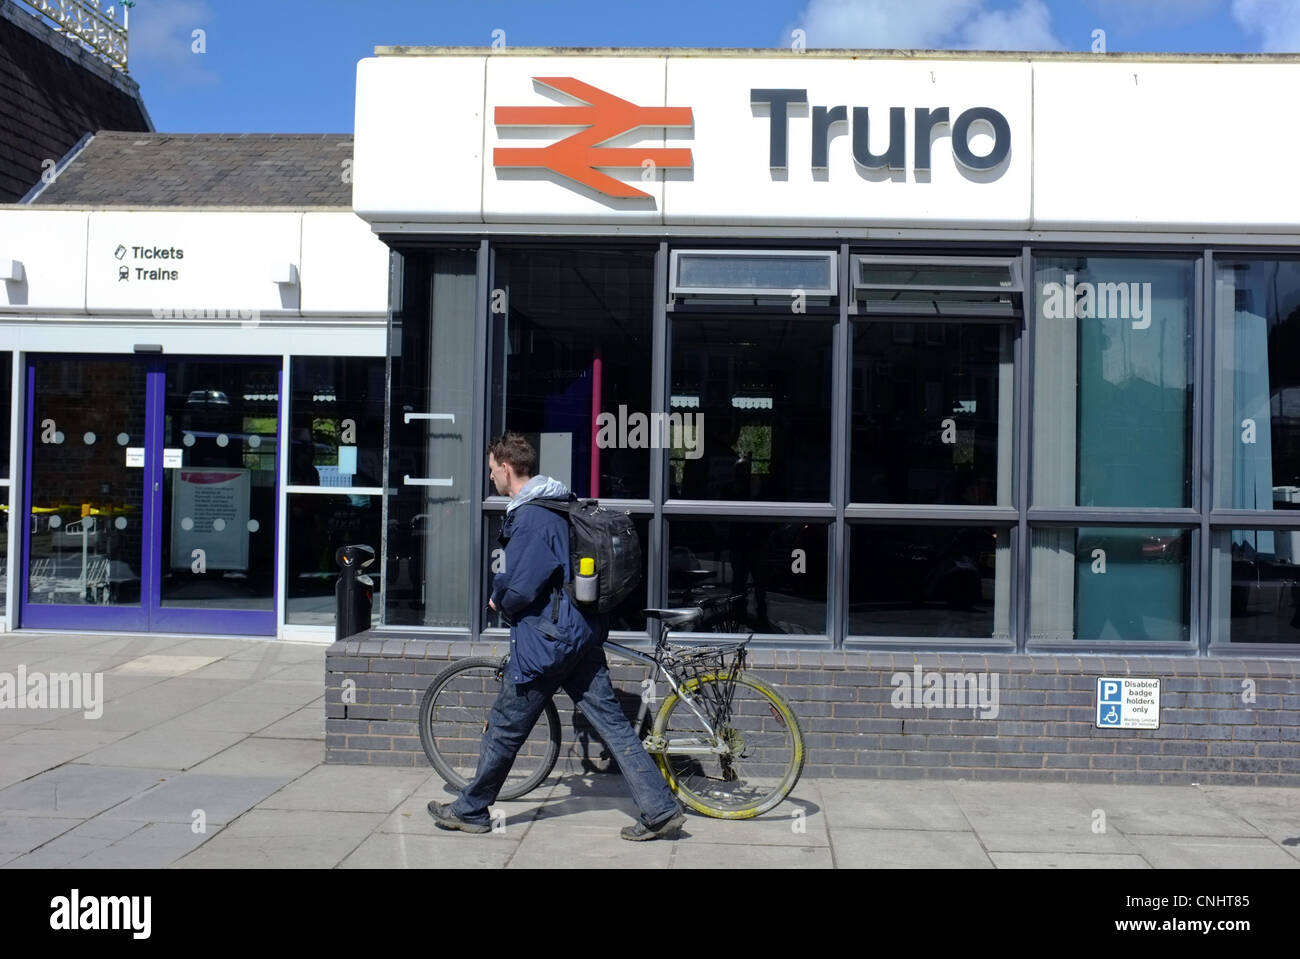 A man with his bike at Truro station - Stock Image